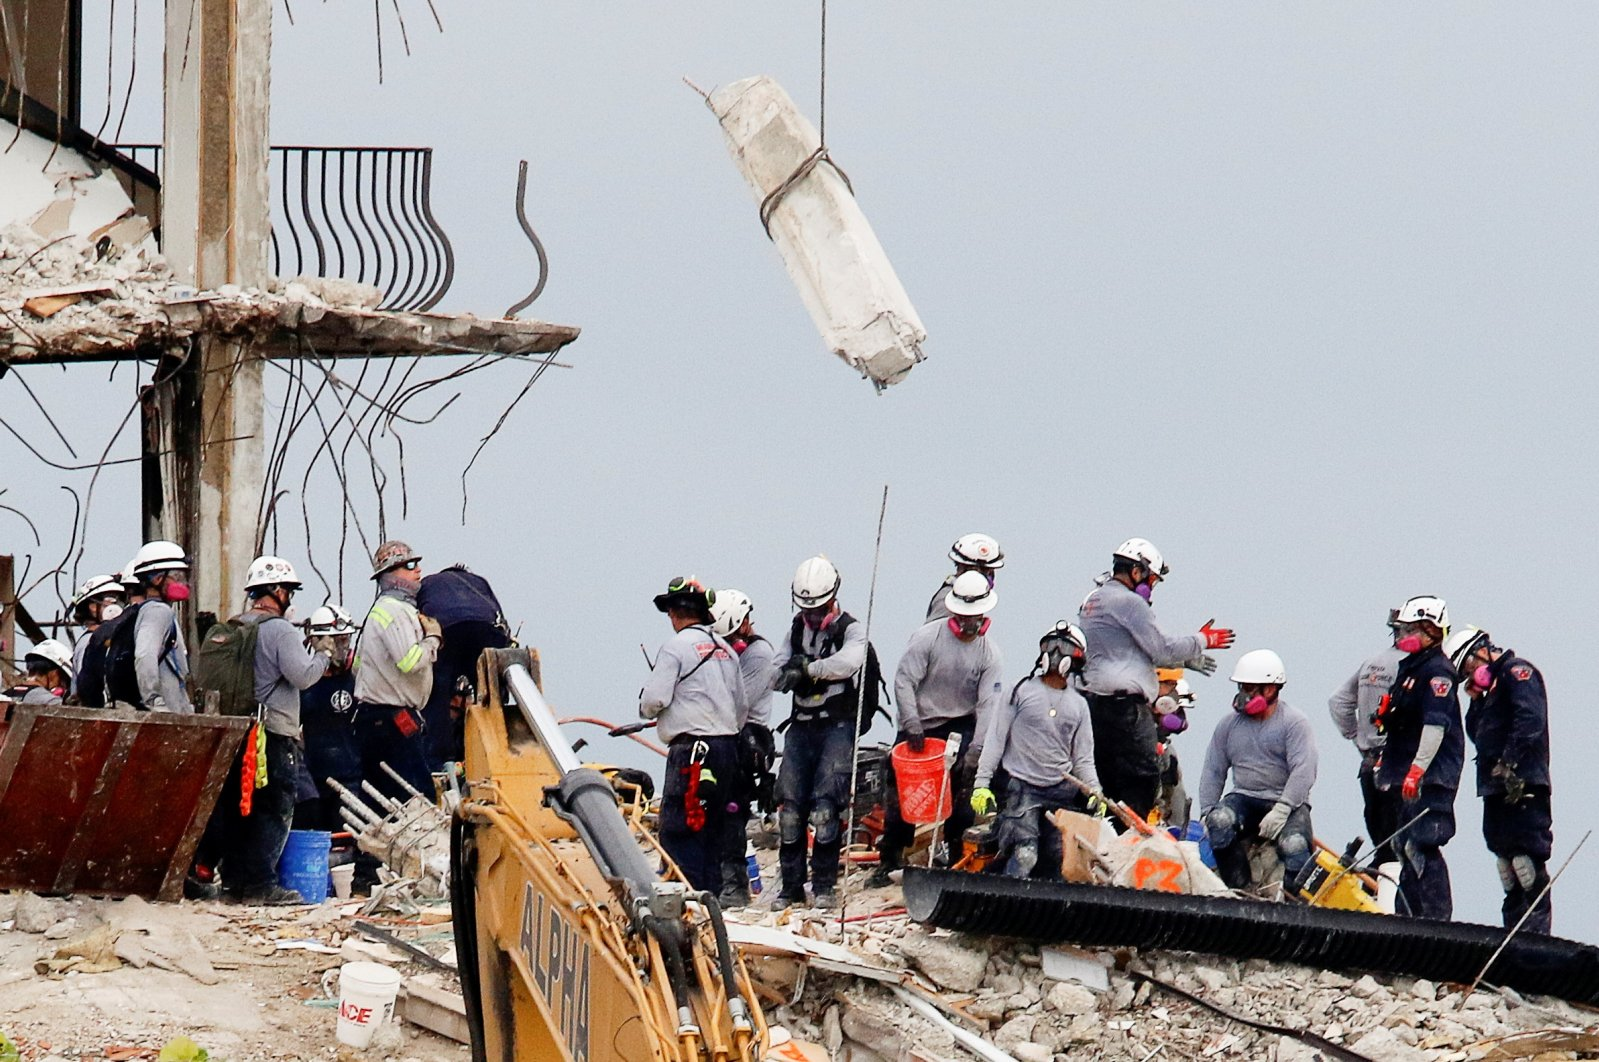 Emergency workers conduct search and rescue efforts at the site of a partially collapsed residential building in Surfside, Florida, U.S., June 30, 2021. (Reuters Photo)